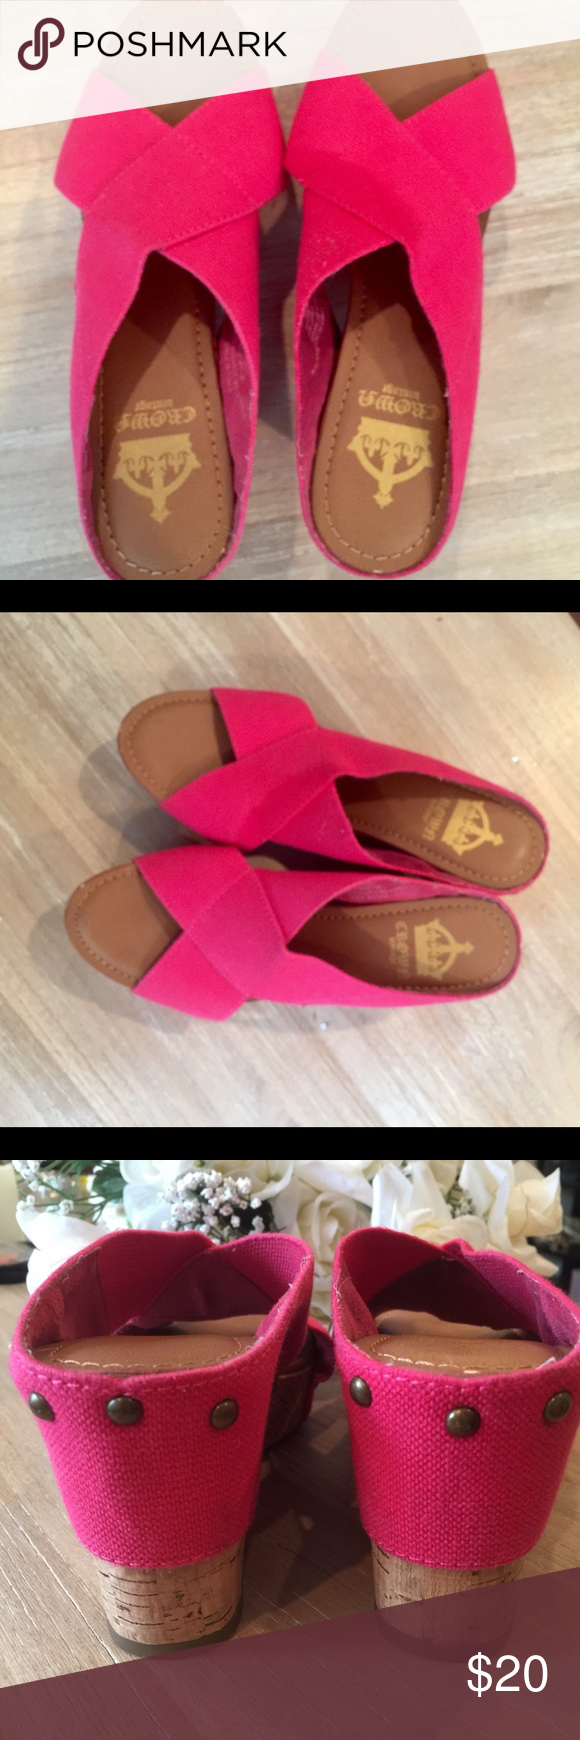 🌸Hot Pink Crown Vintage Wedge Slides- Mint💕 Love a pop of color for your feet ? Look sexy and be comfortable at the same time. These fushia, hot pink canvas wedge criss cross wedge sandals by Crown Vintage are awesome! Gently loved - wore maybe 2-3 times . Excellent condition! Crowne Vintage Shoes Wedges